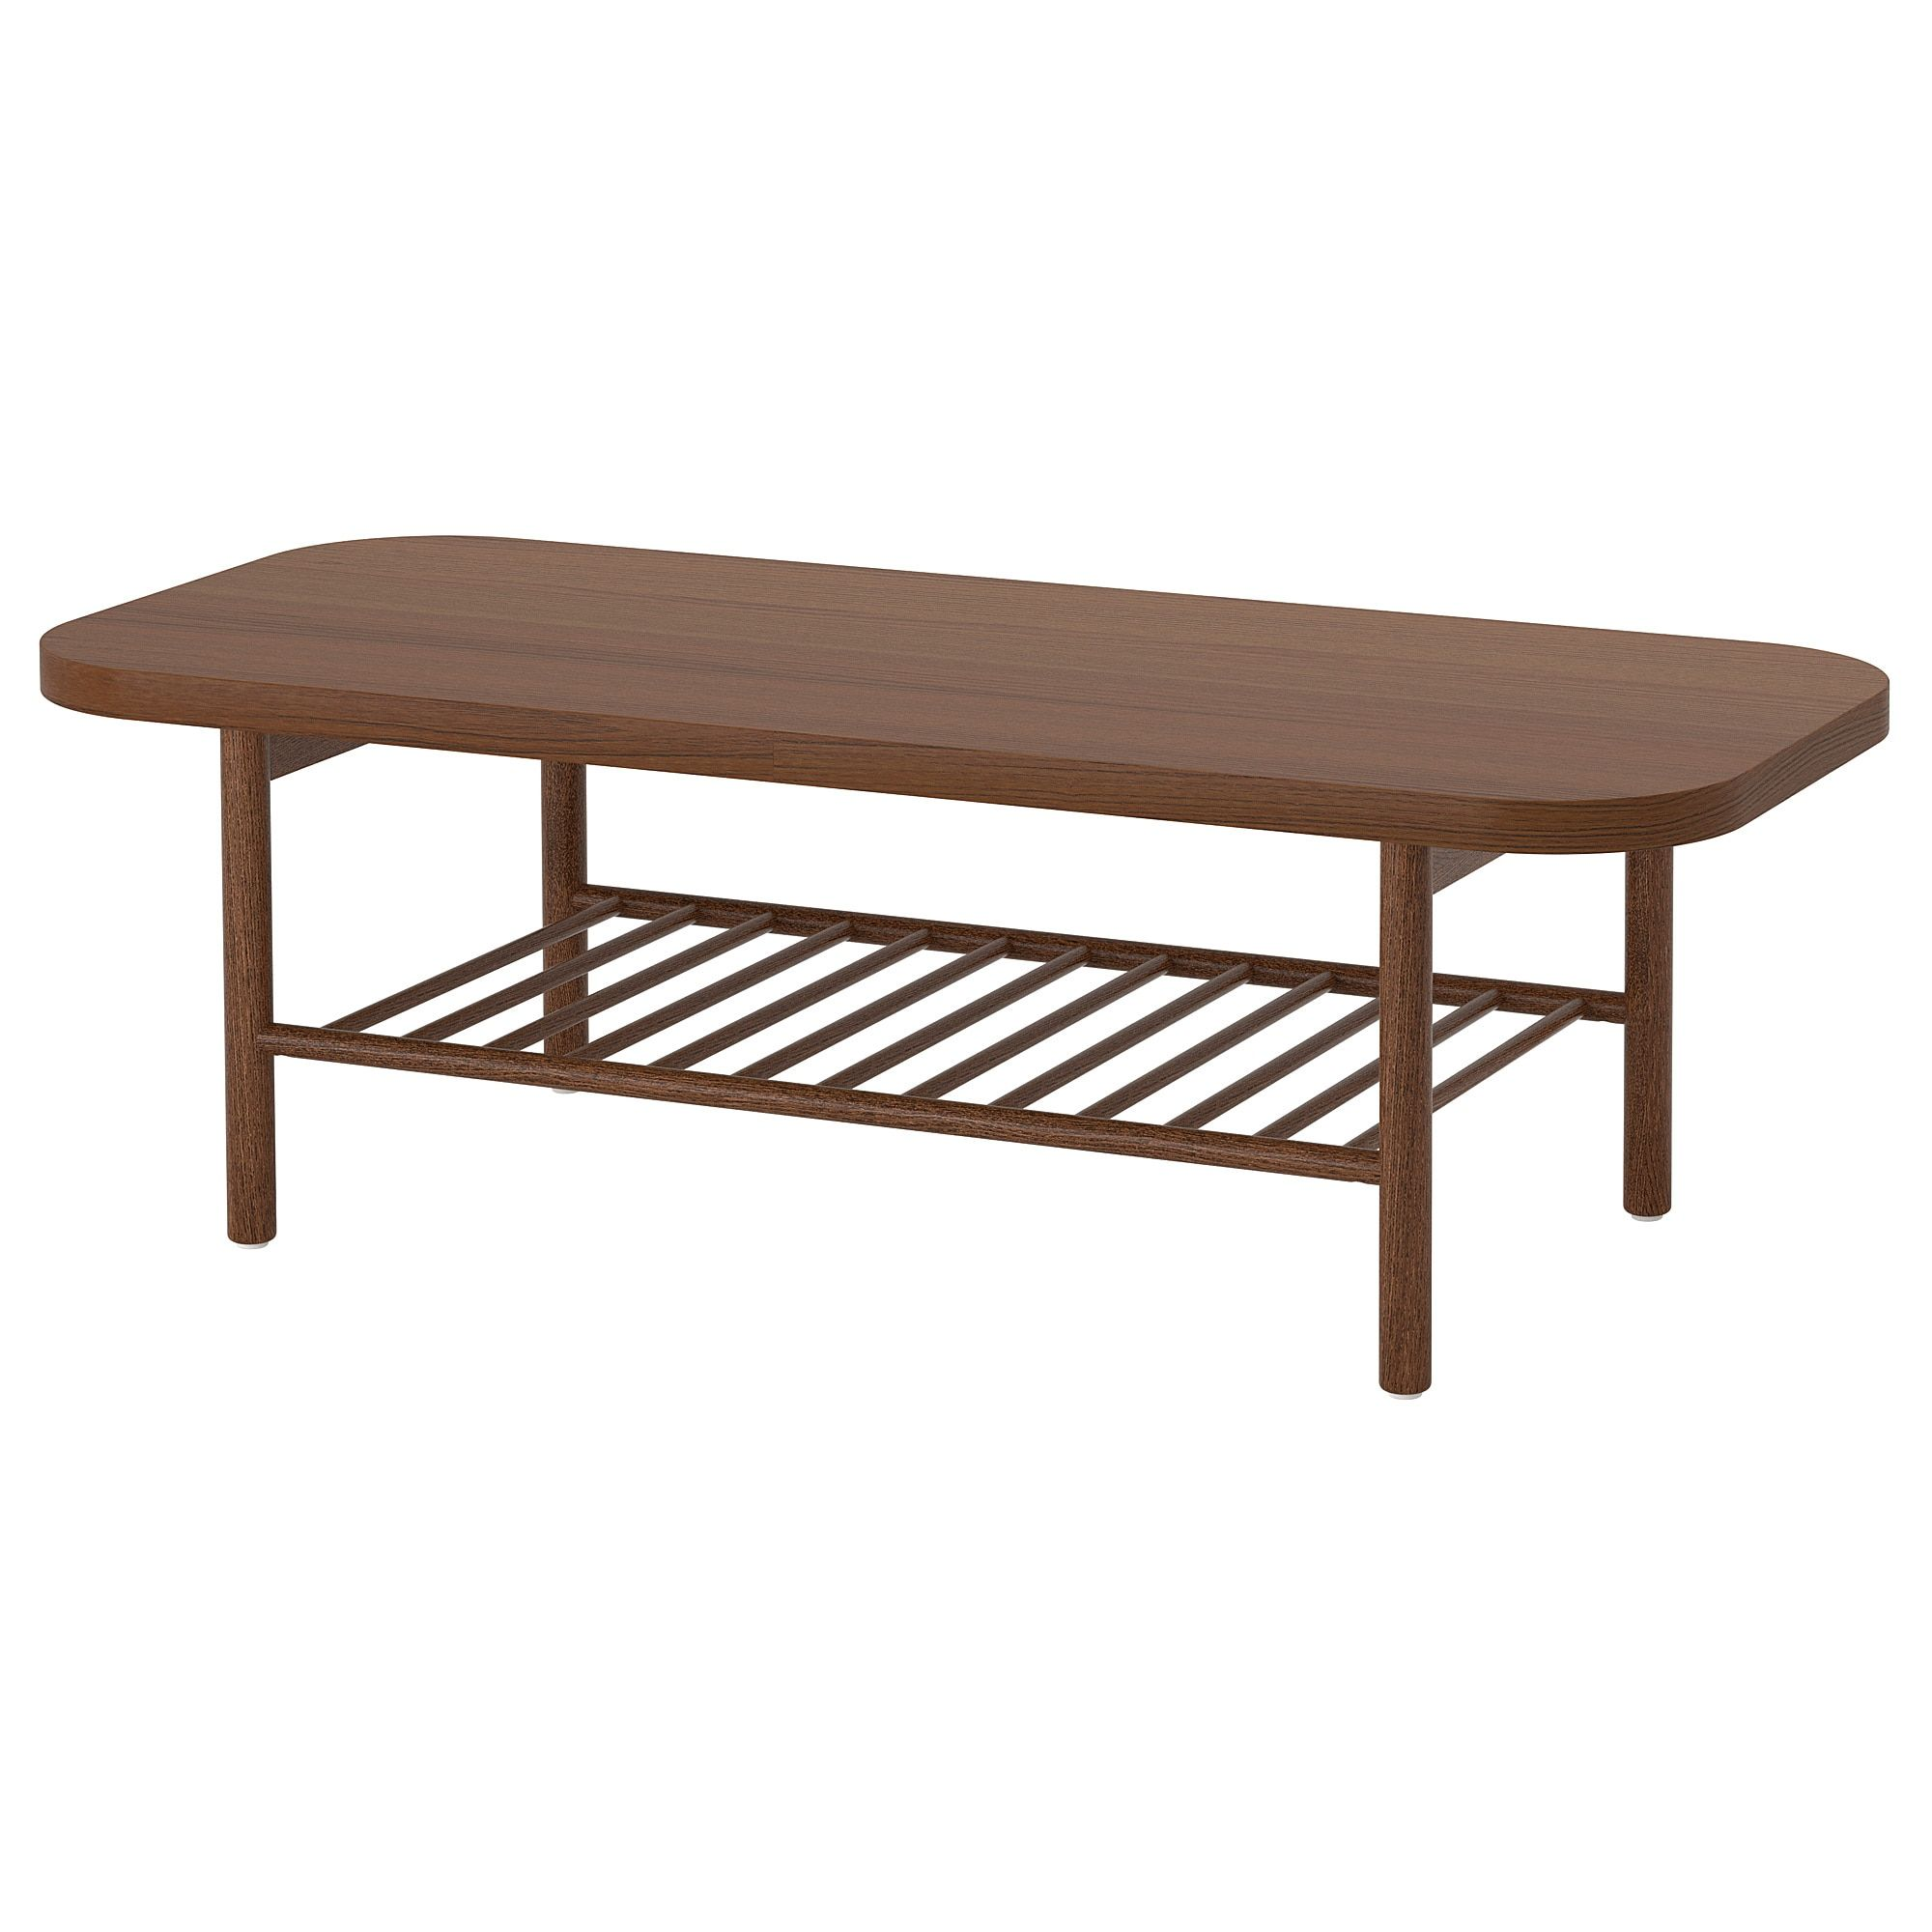 Ikea Large Coffee Table: IKEA - LISTERBY Coffee Table Brown In 2019